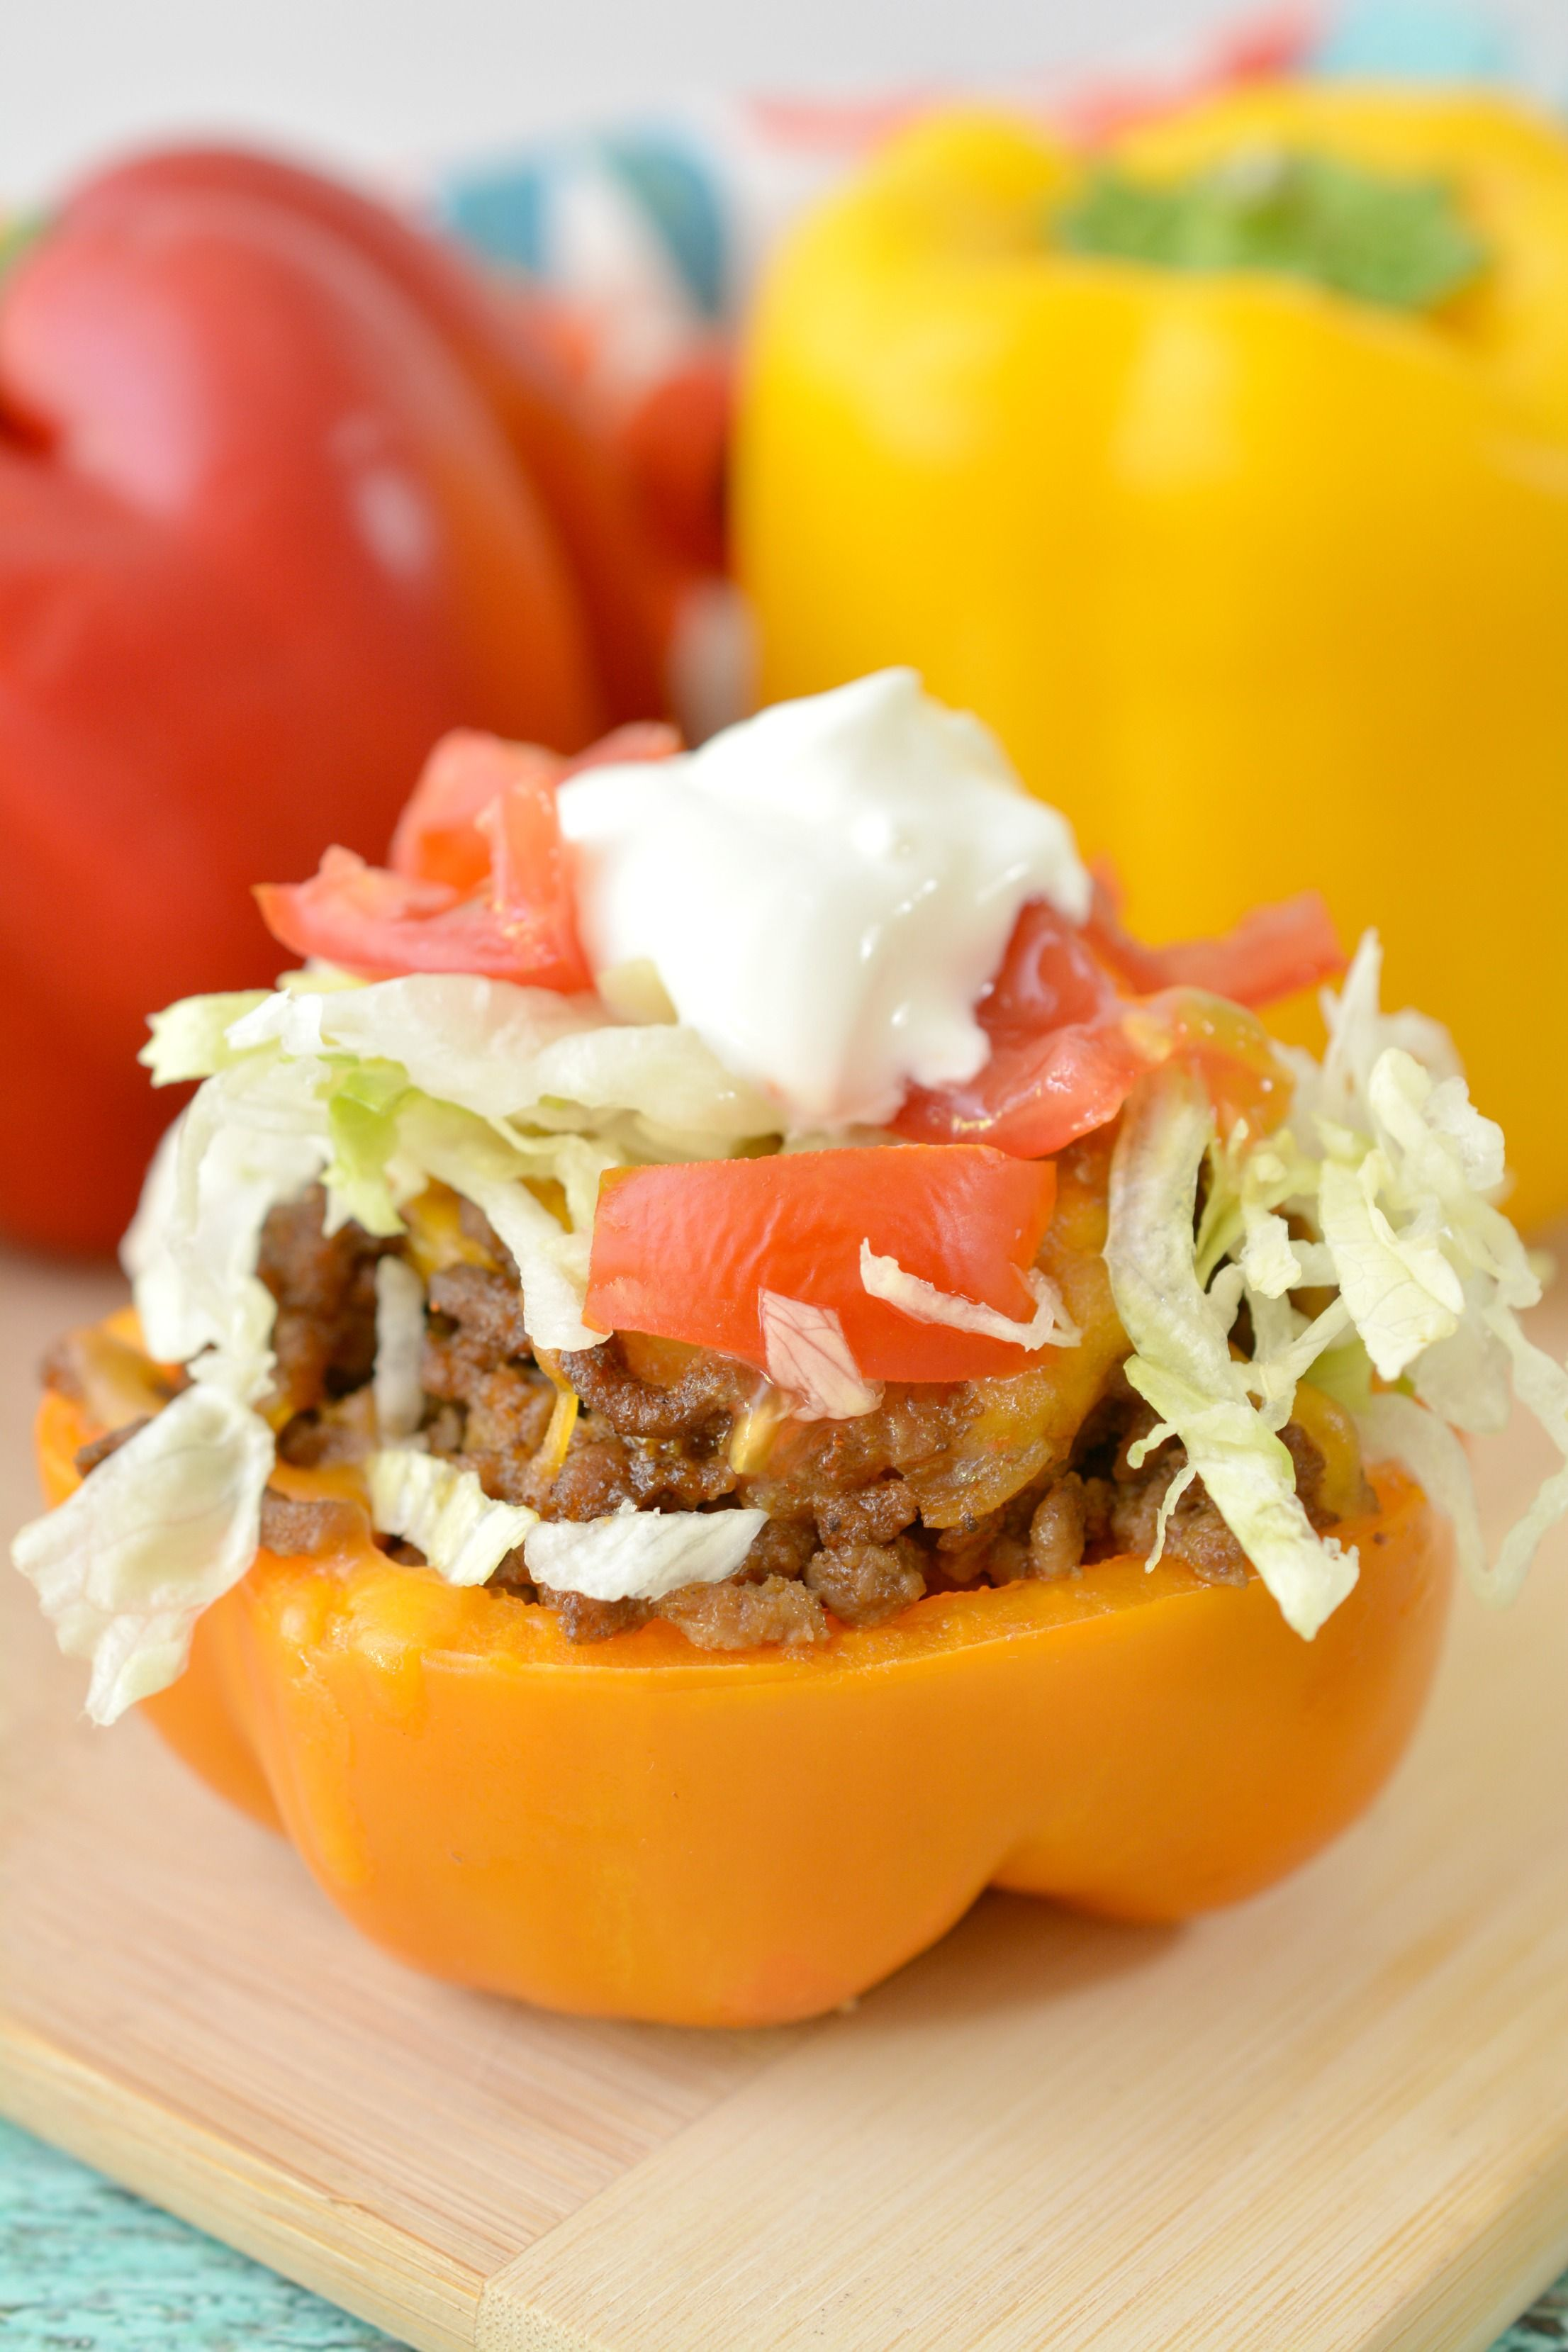 Keto Stuffed Bell Peppers Everyday Ketogenic Recipe Low Carb Stuffed Peppers Peppers Recipes Stuffed Bell Peppers